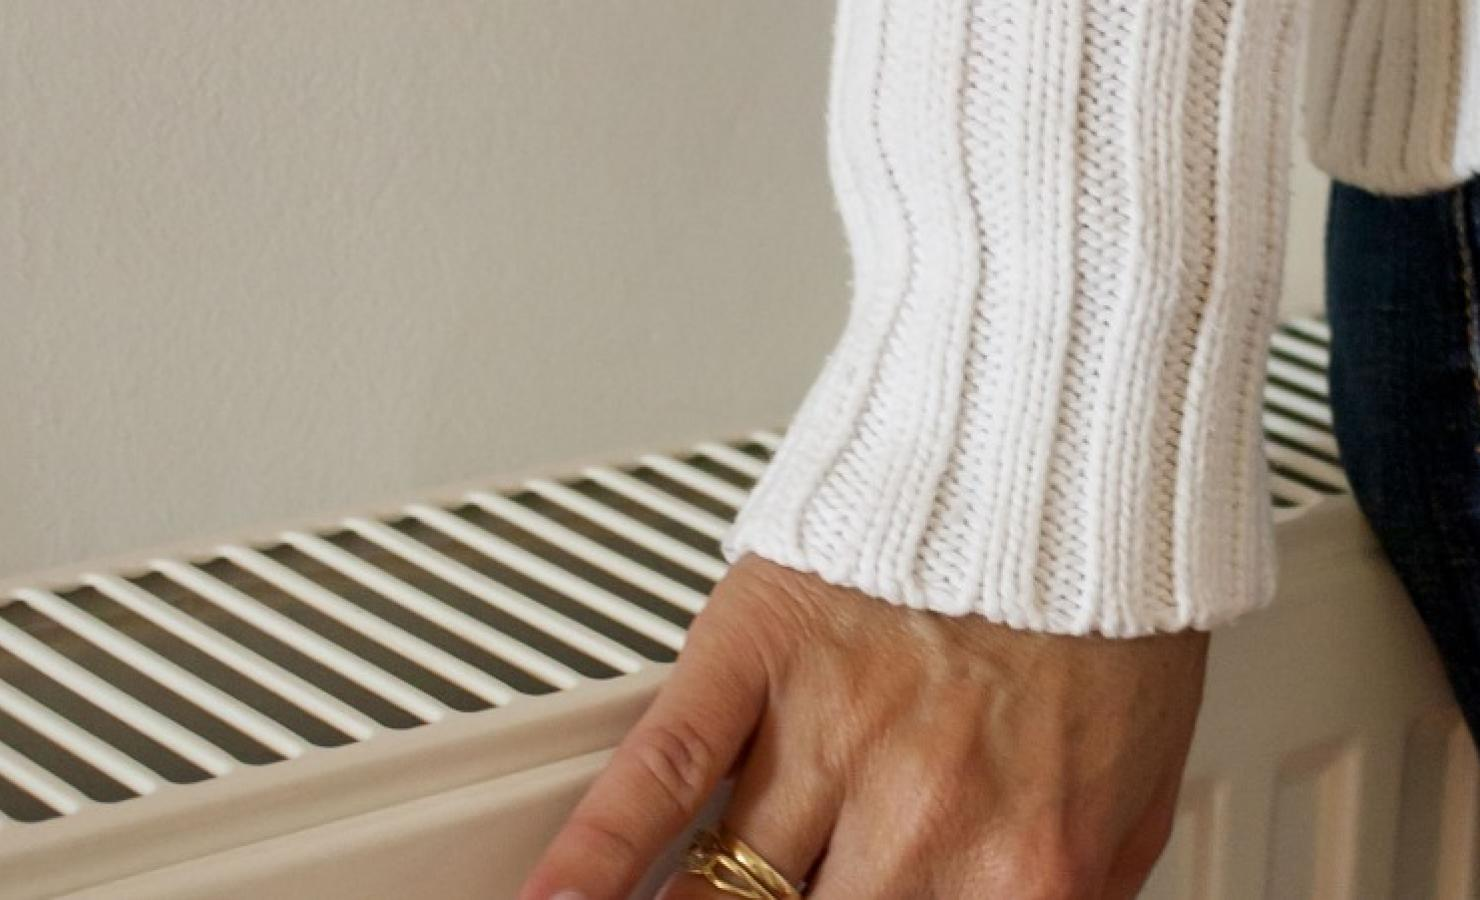 Person warming up next to a radiator